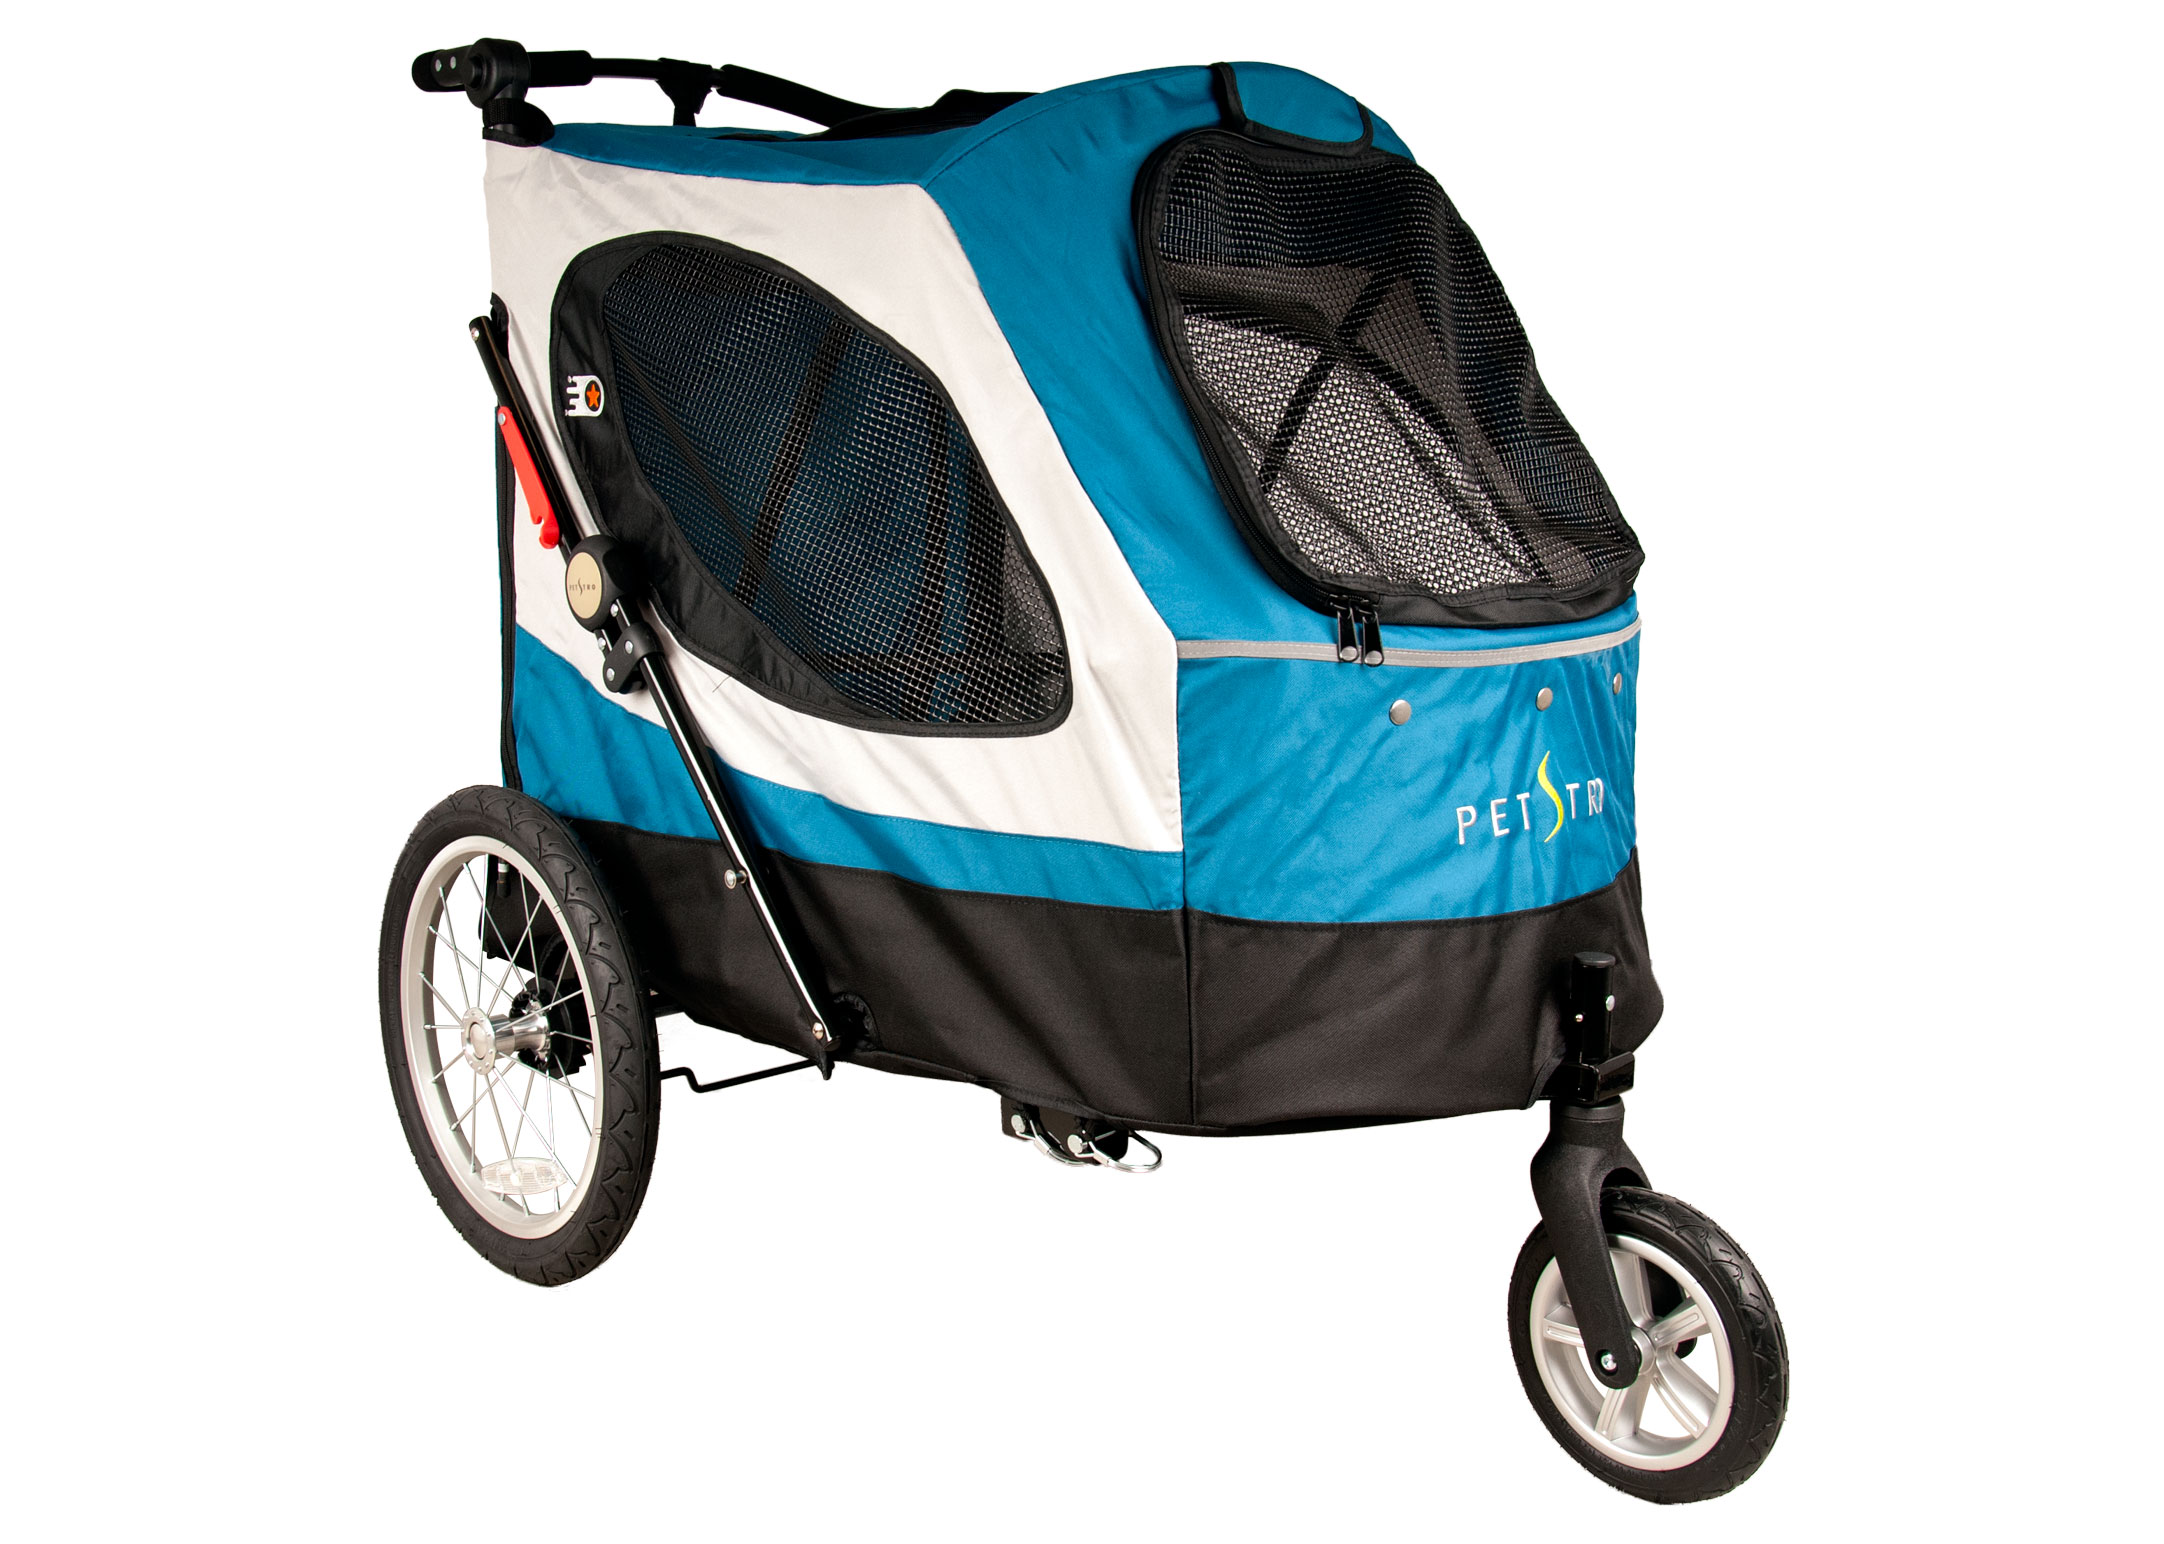 Petstro Large 3-wheel Buggy, Turquoise/Grey